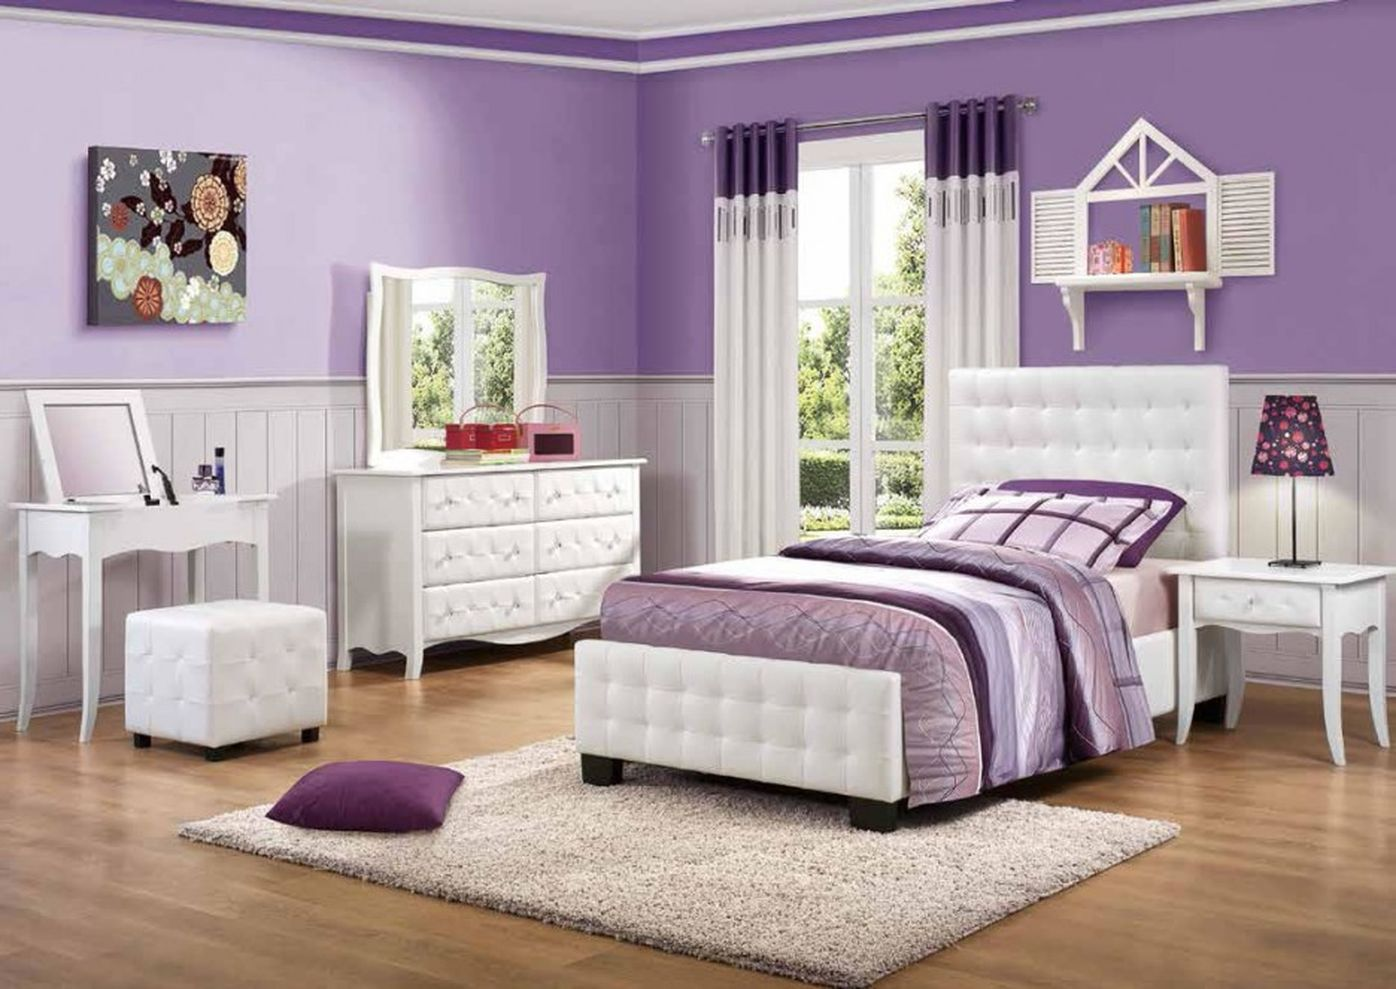 Inspiring bedroom design ideas for teenage girl 76